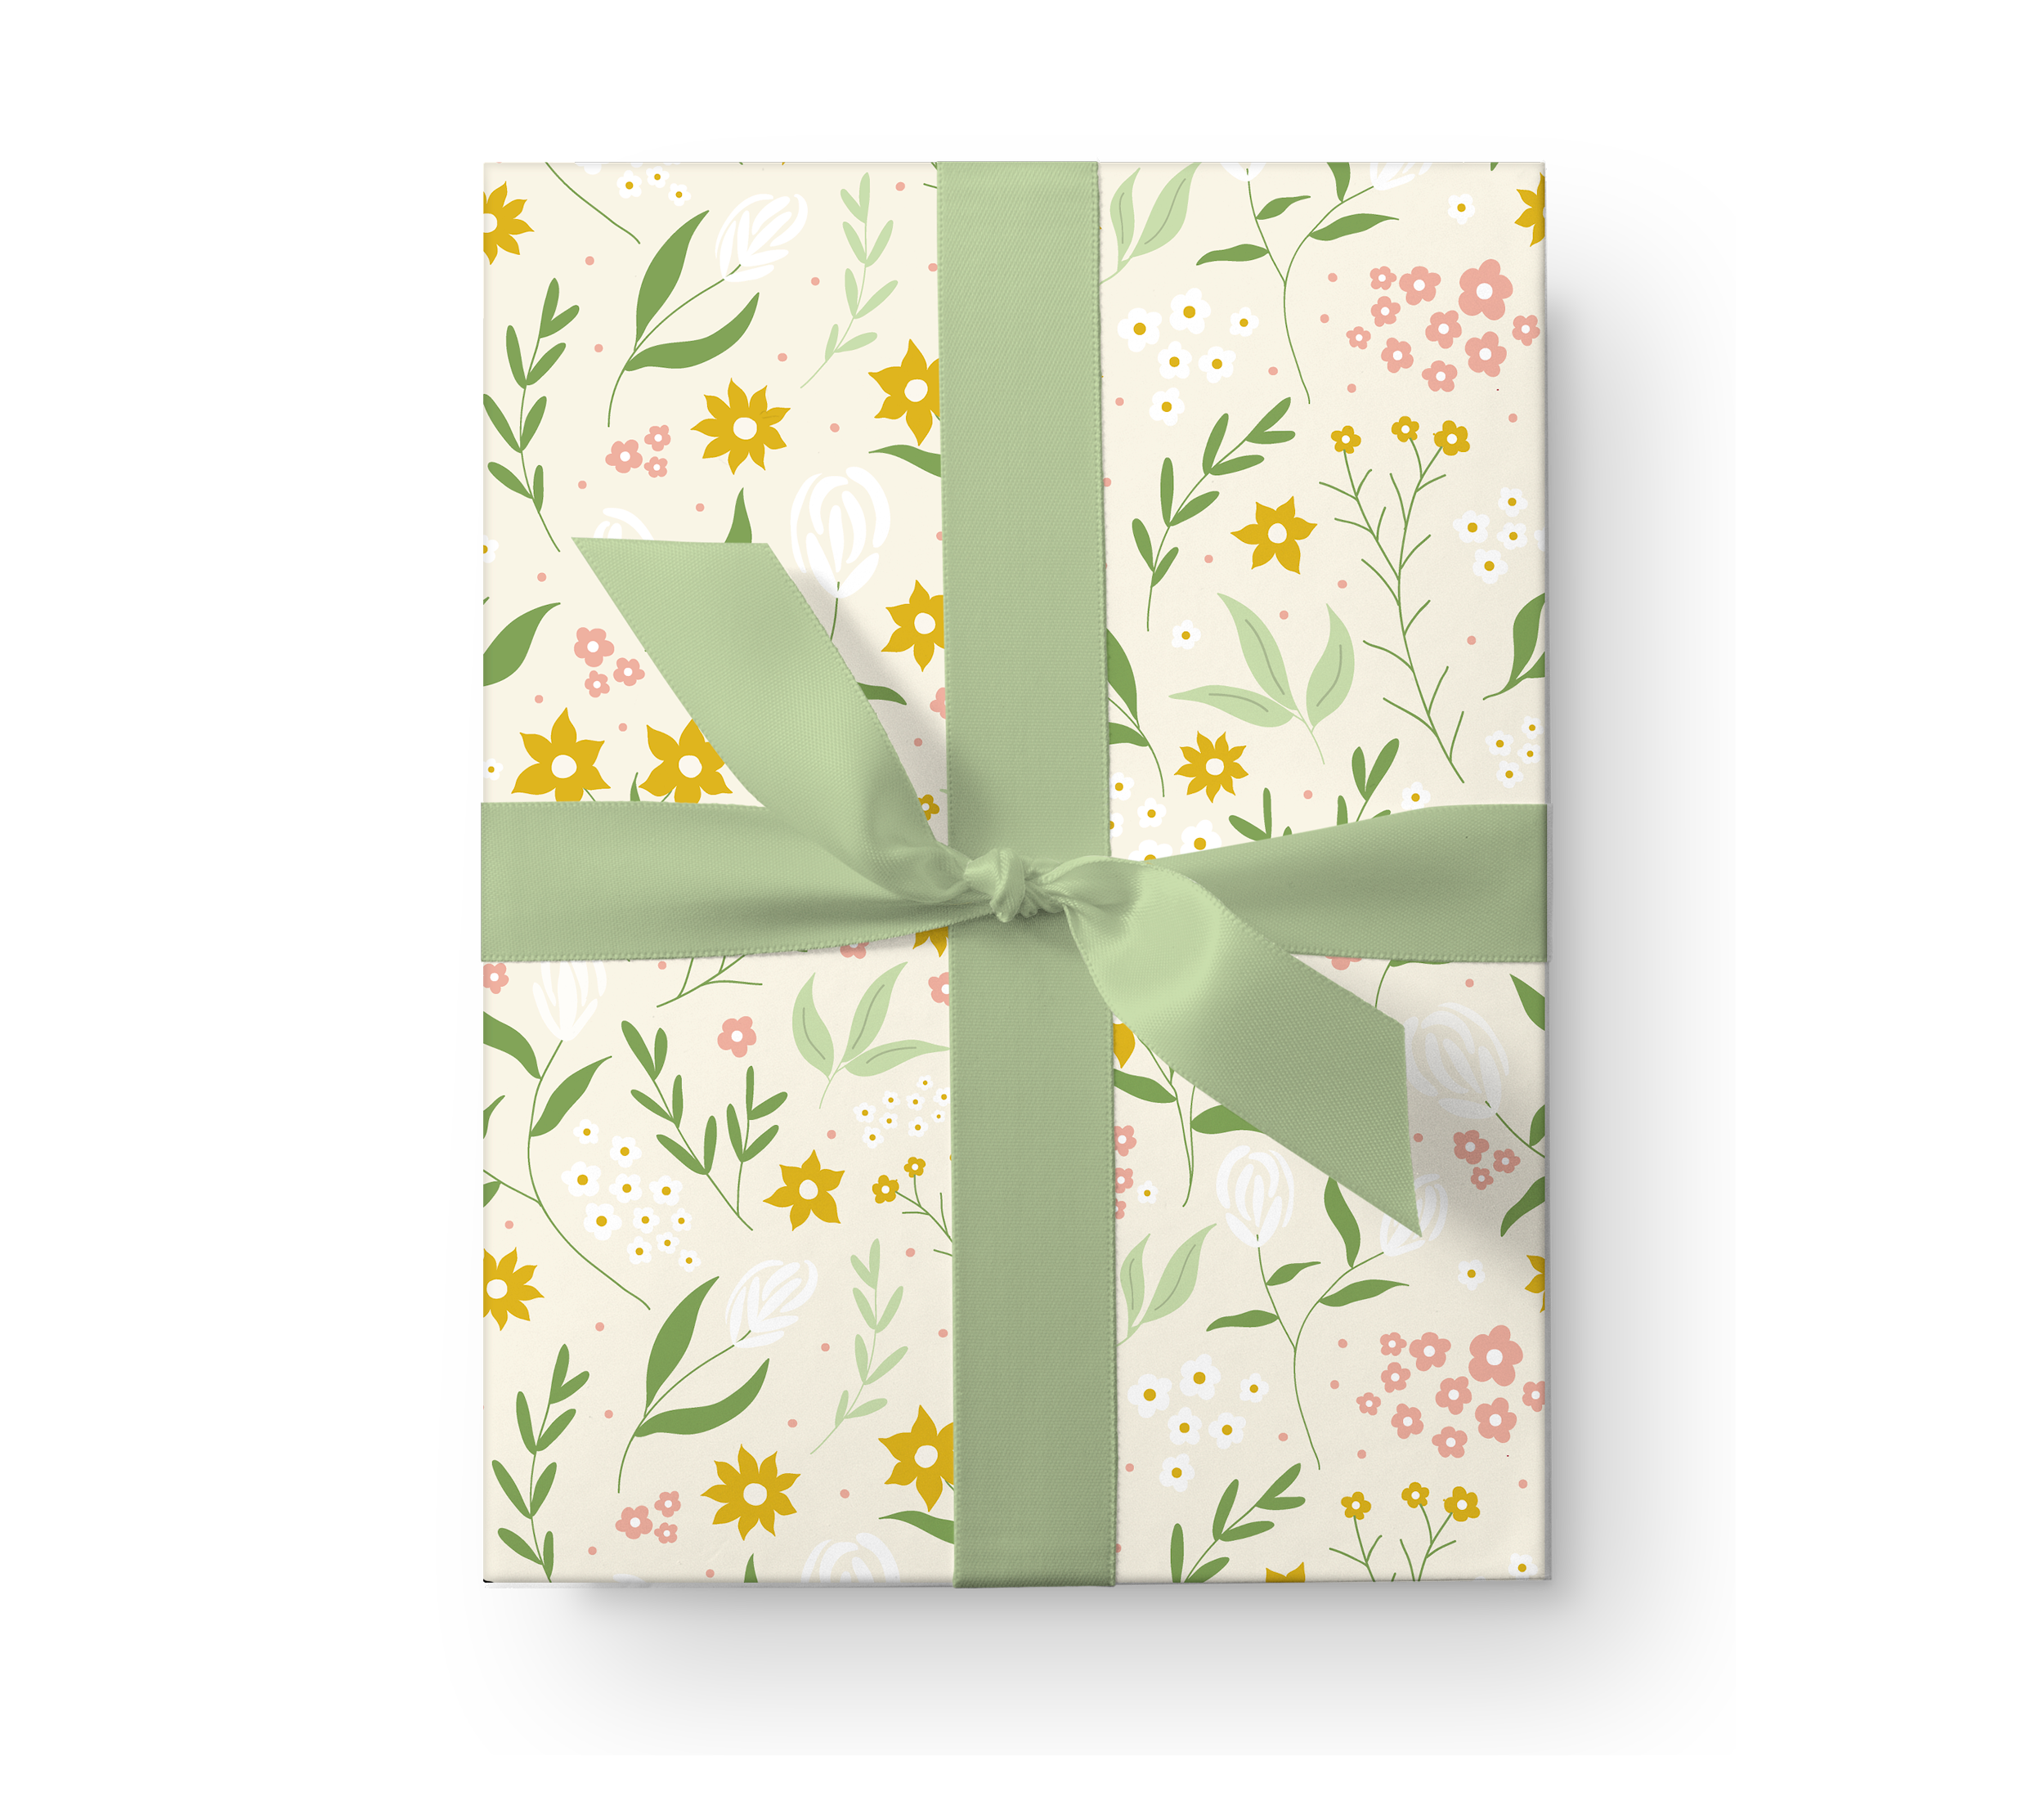 Illustrated wrapping paper gift box with a beautiful floral pattern on a pale green background.